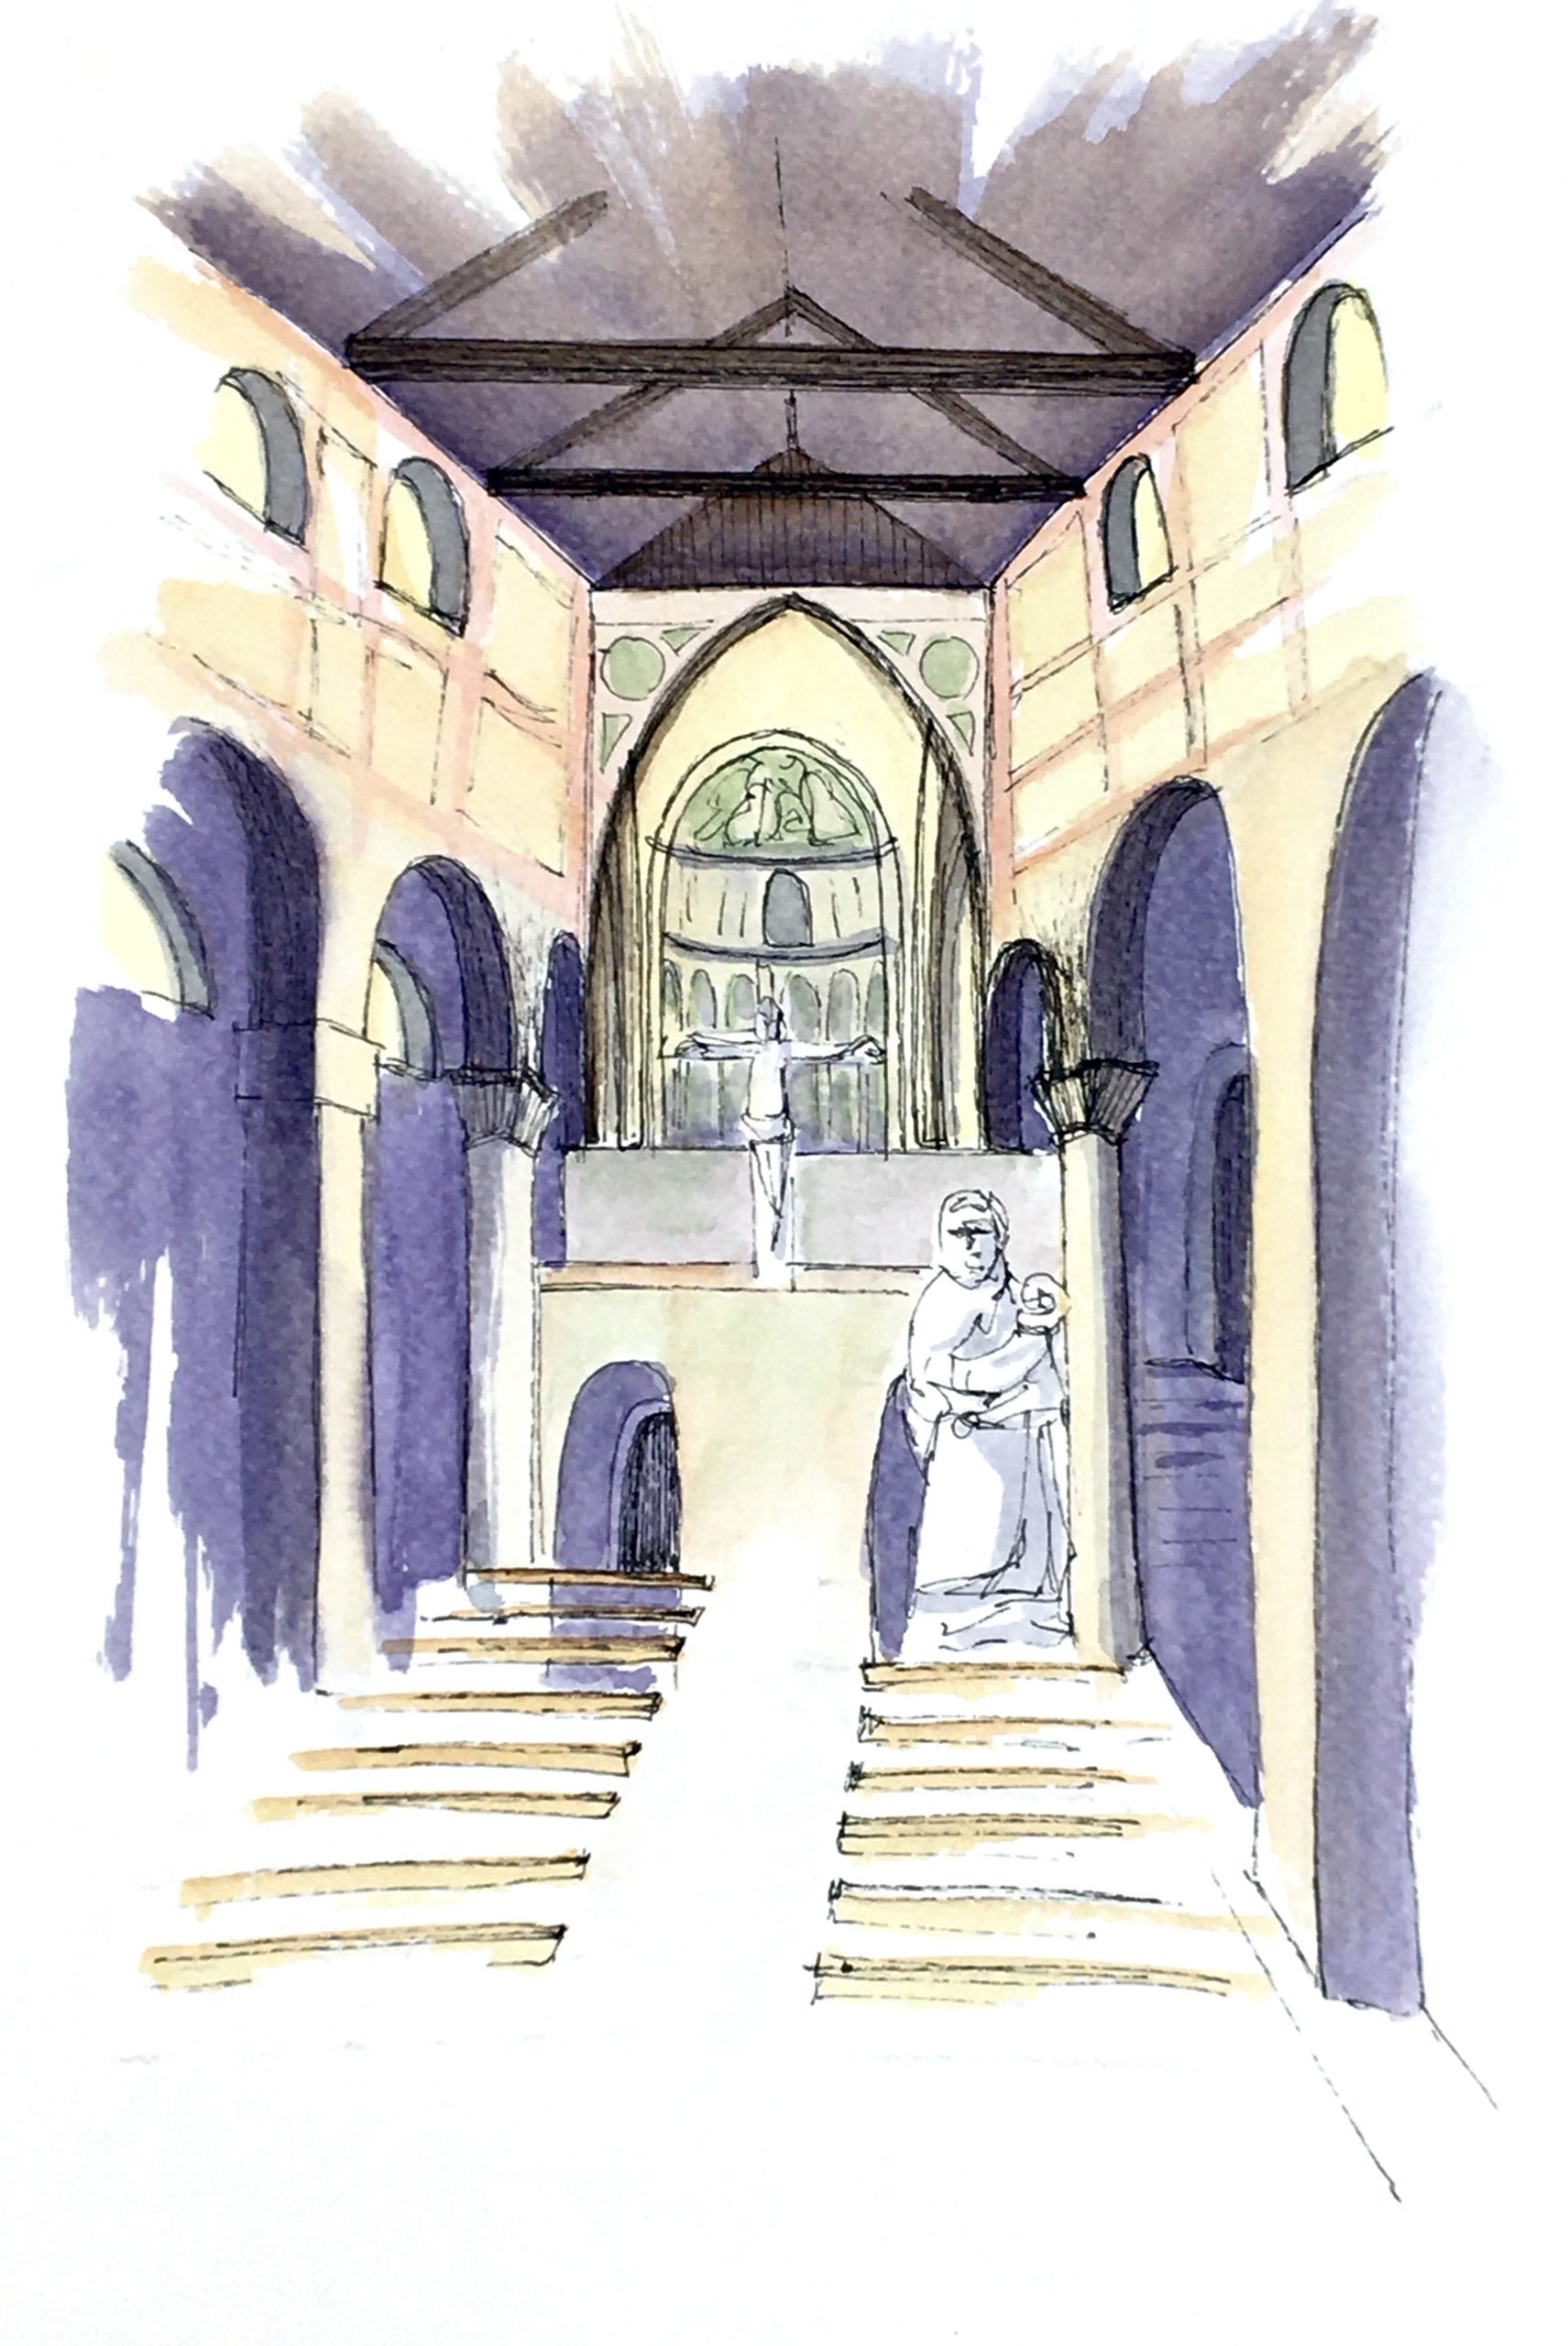 Painting of the interior of the Abbey in Sesto al Reghena